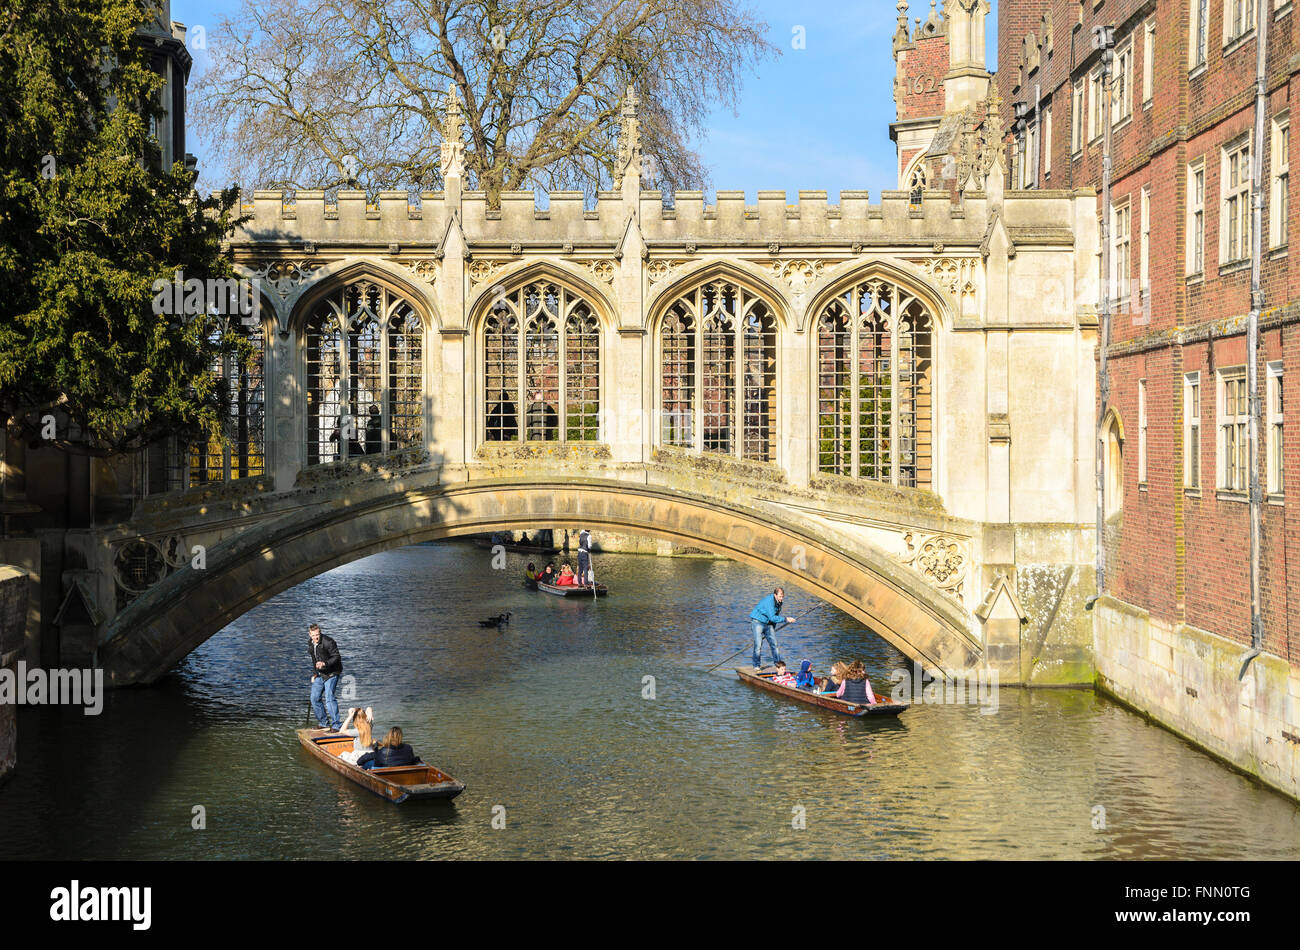 The bridge commonly known as the 'Bridge of Sighs' over the River Cam, St Johns College, Cambridge, England, UK. Stock Photo